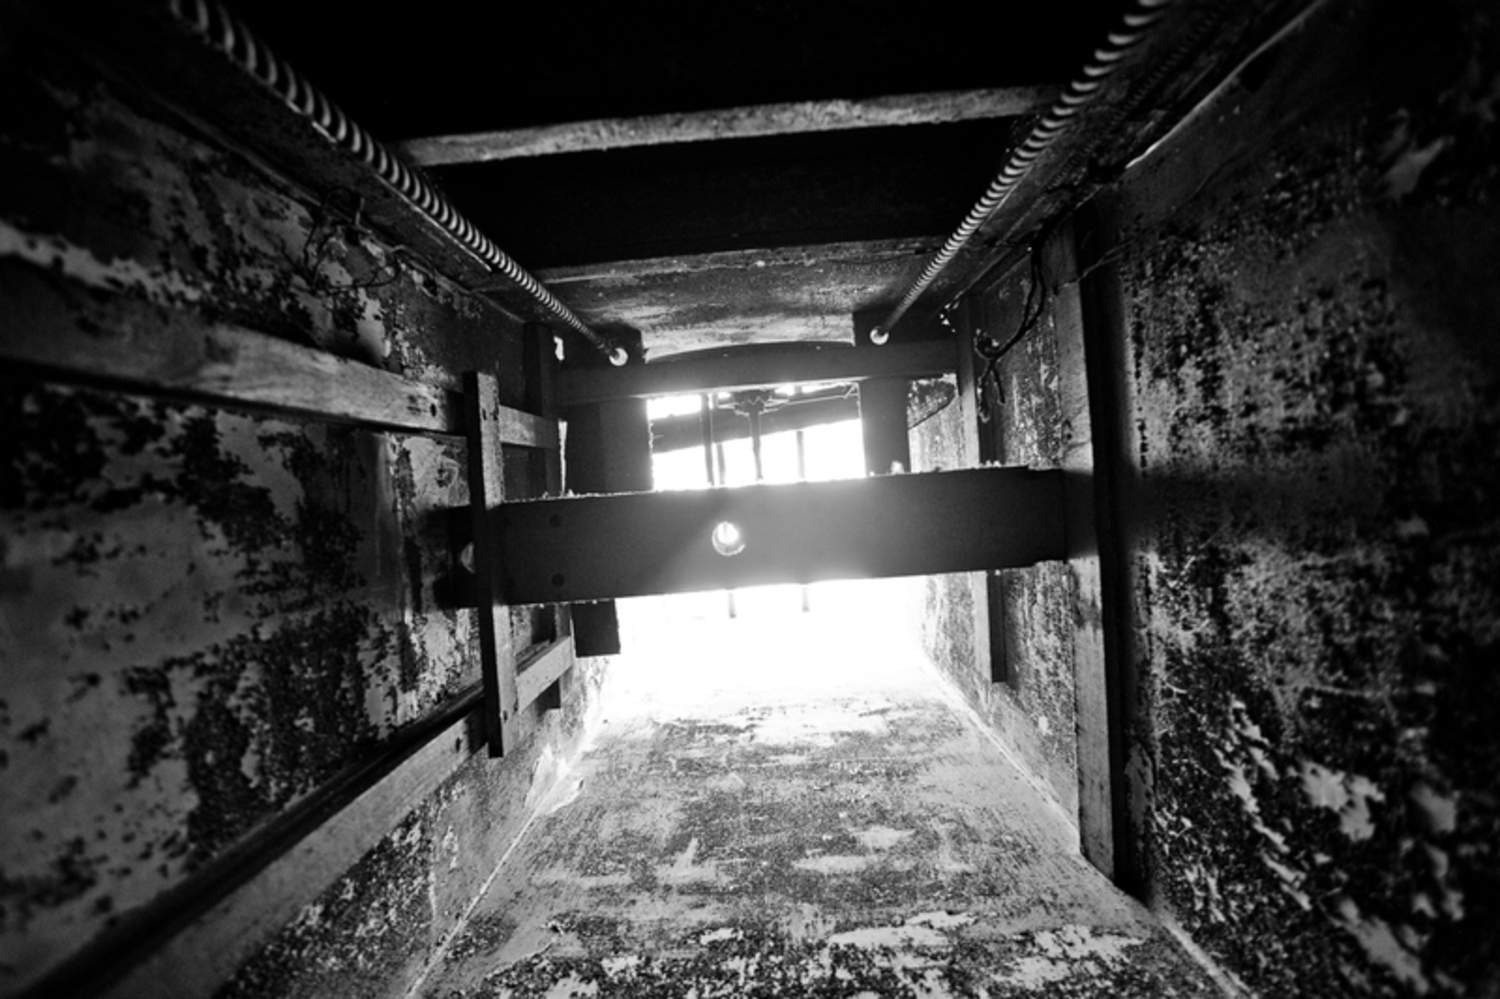 Death chute (also known as a dumbwaiter shaft) looking up.